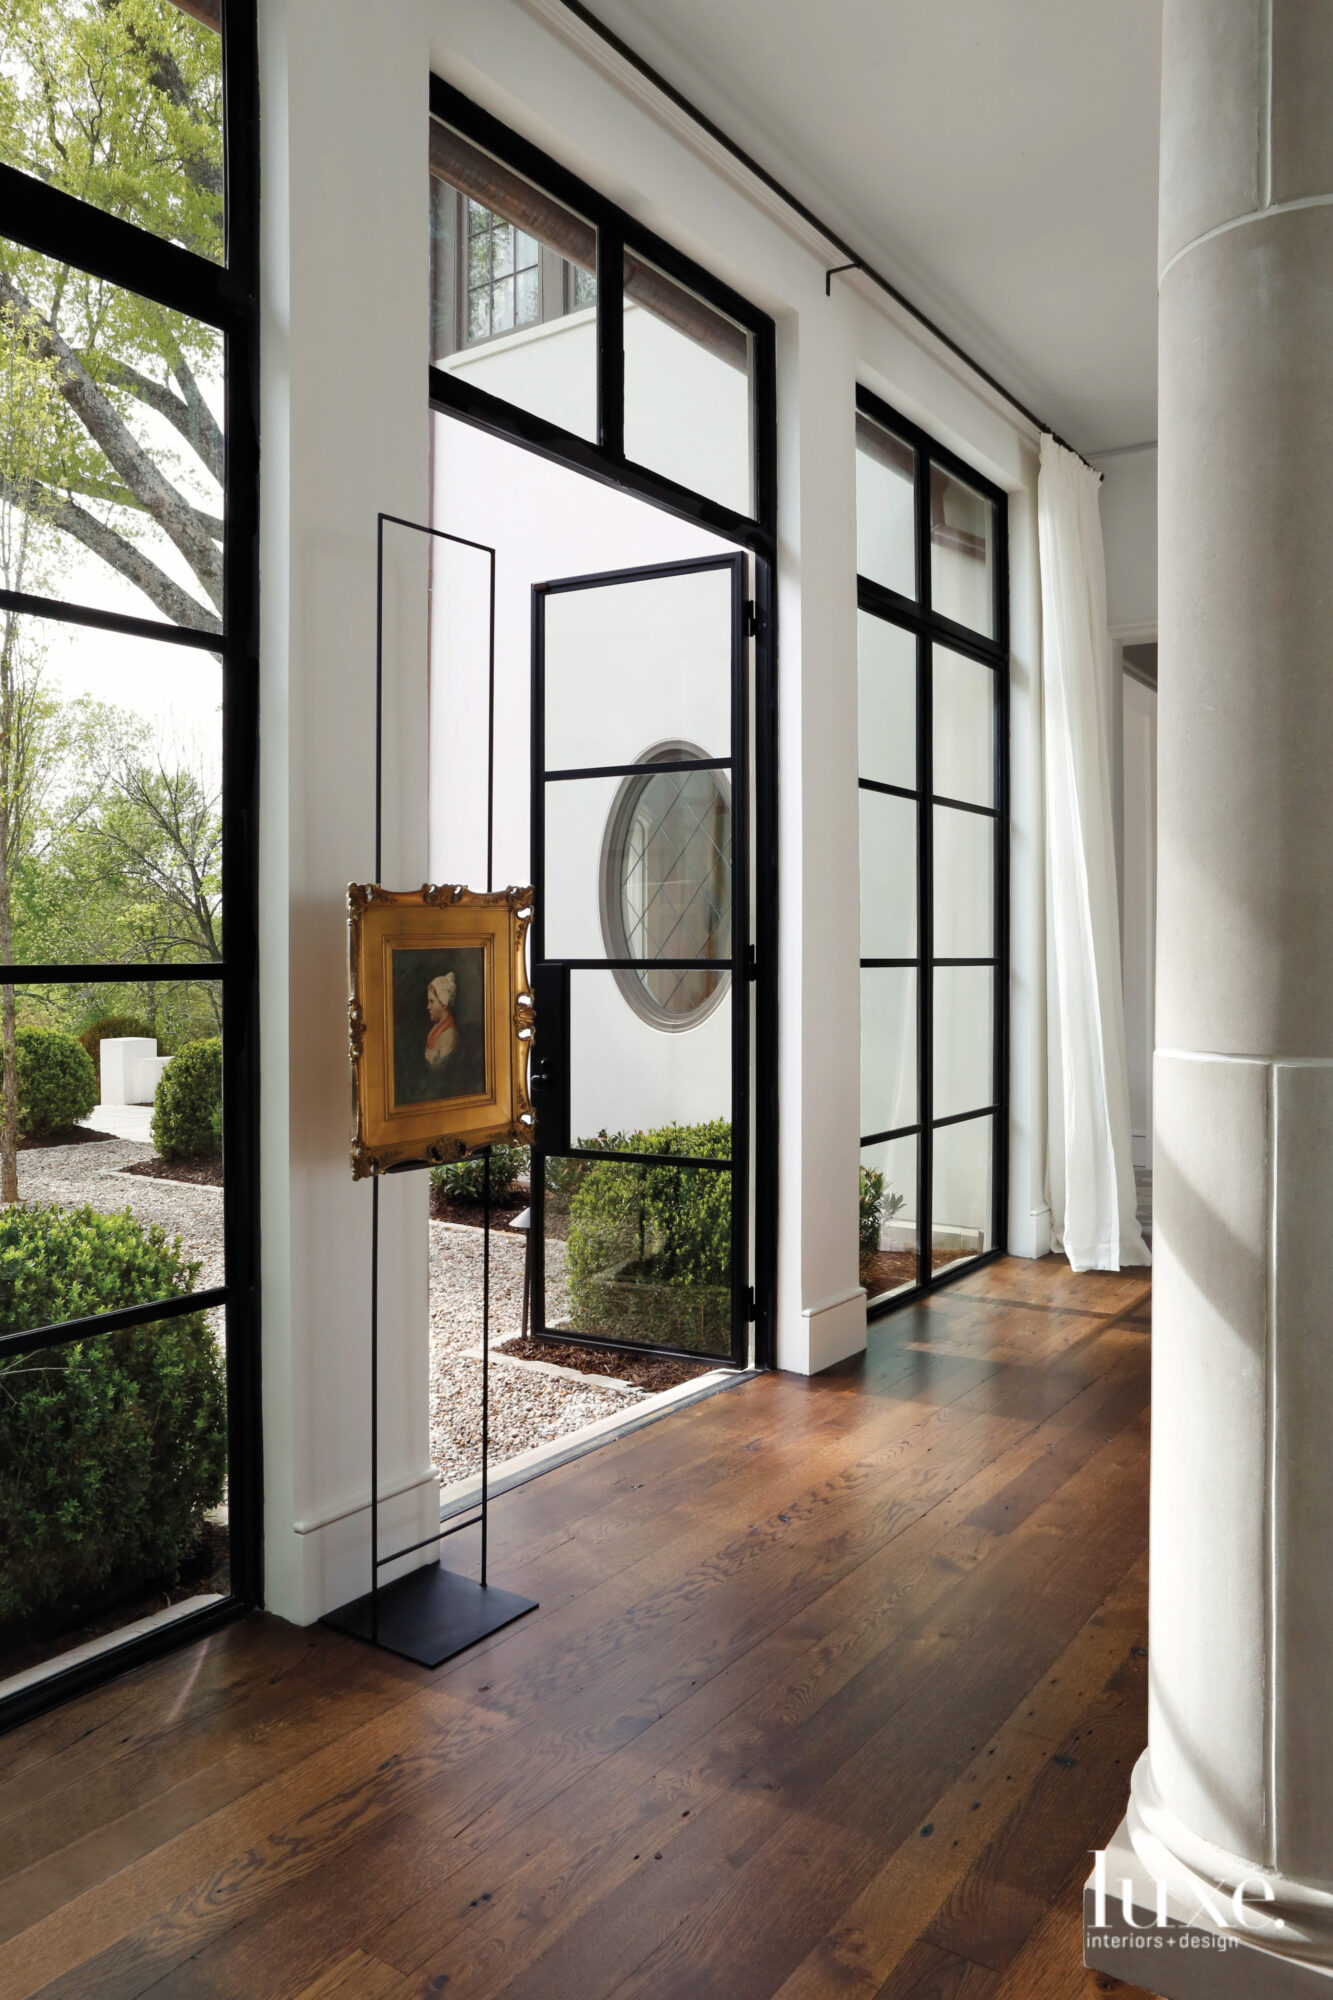 Dark wood floors and steel French doors lead to a breezy courtyard with pea gravel and clipped boxwoods